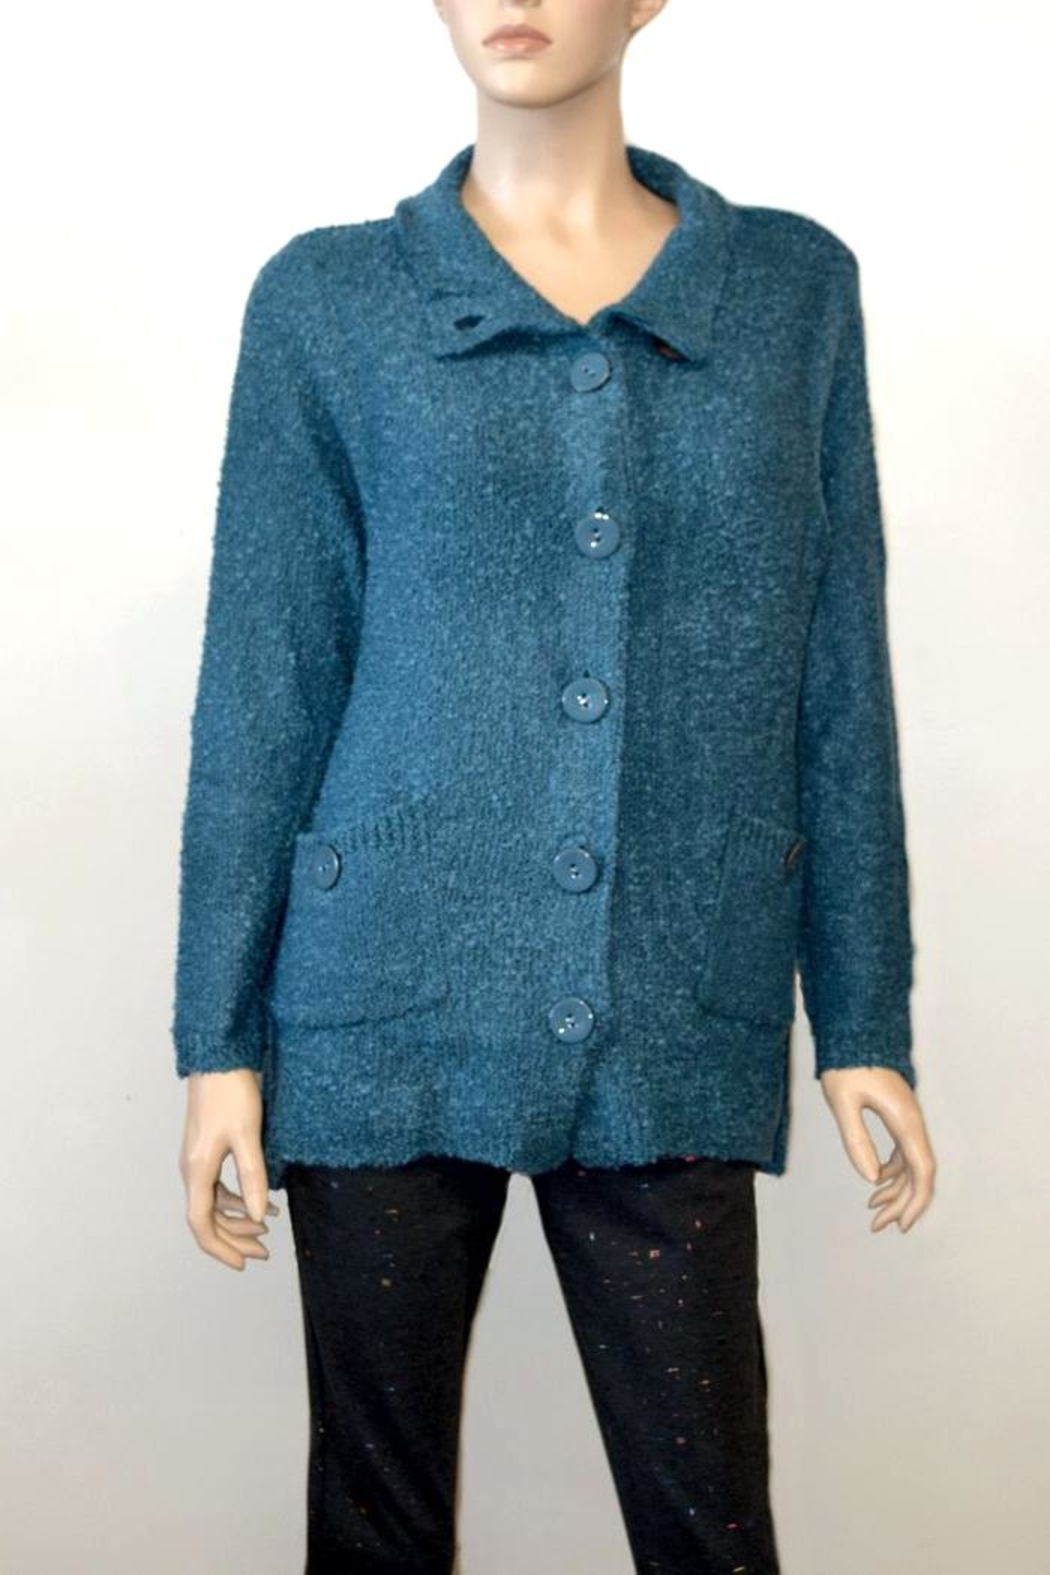 The Dressing Room Textured Blue Sweater - Main Image